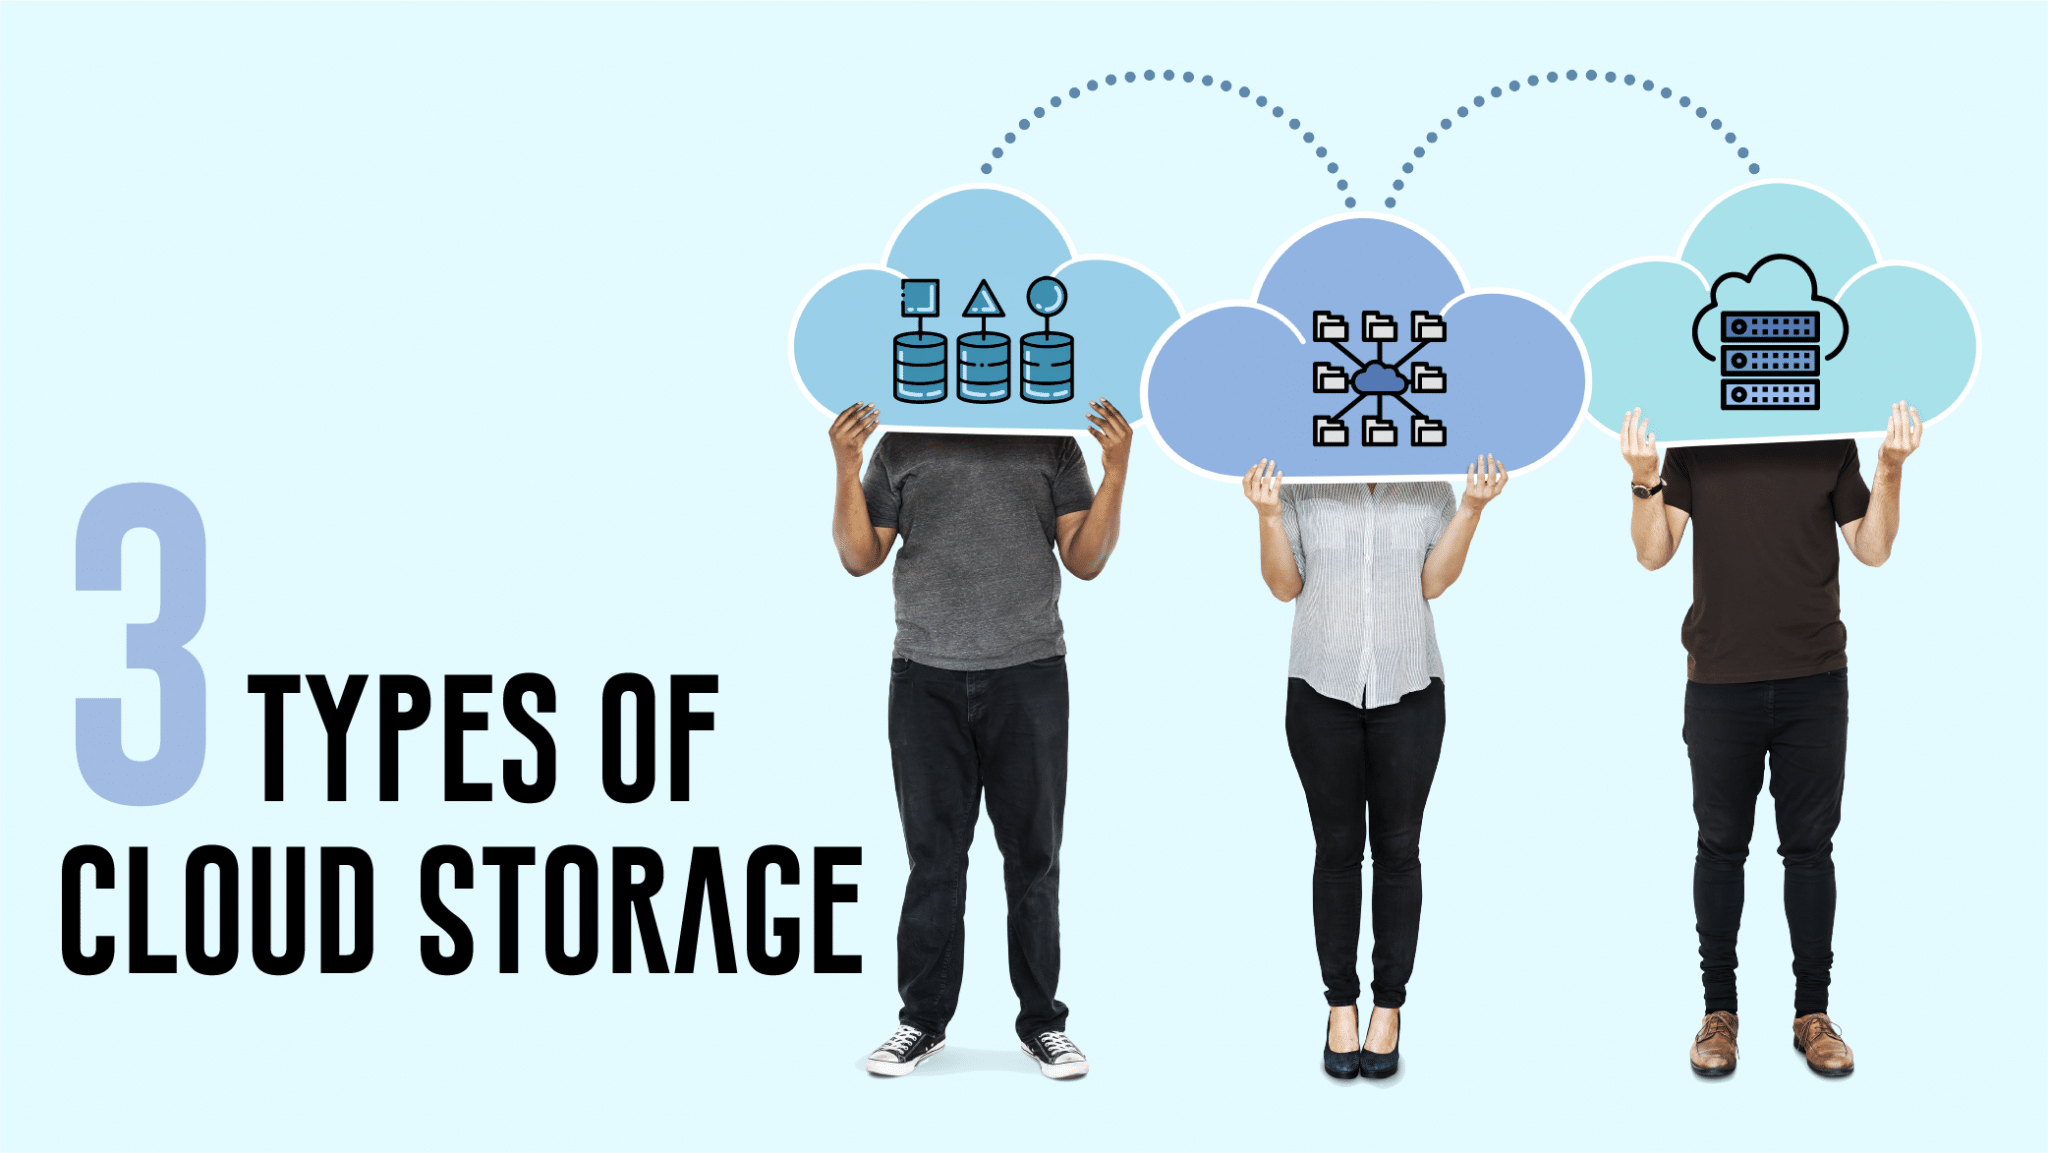 3 types of cloud storage title